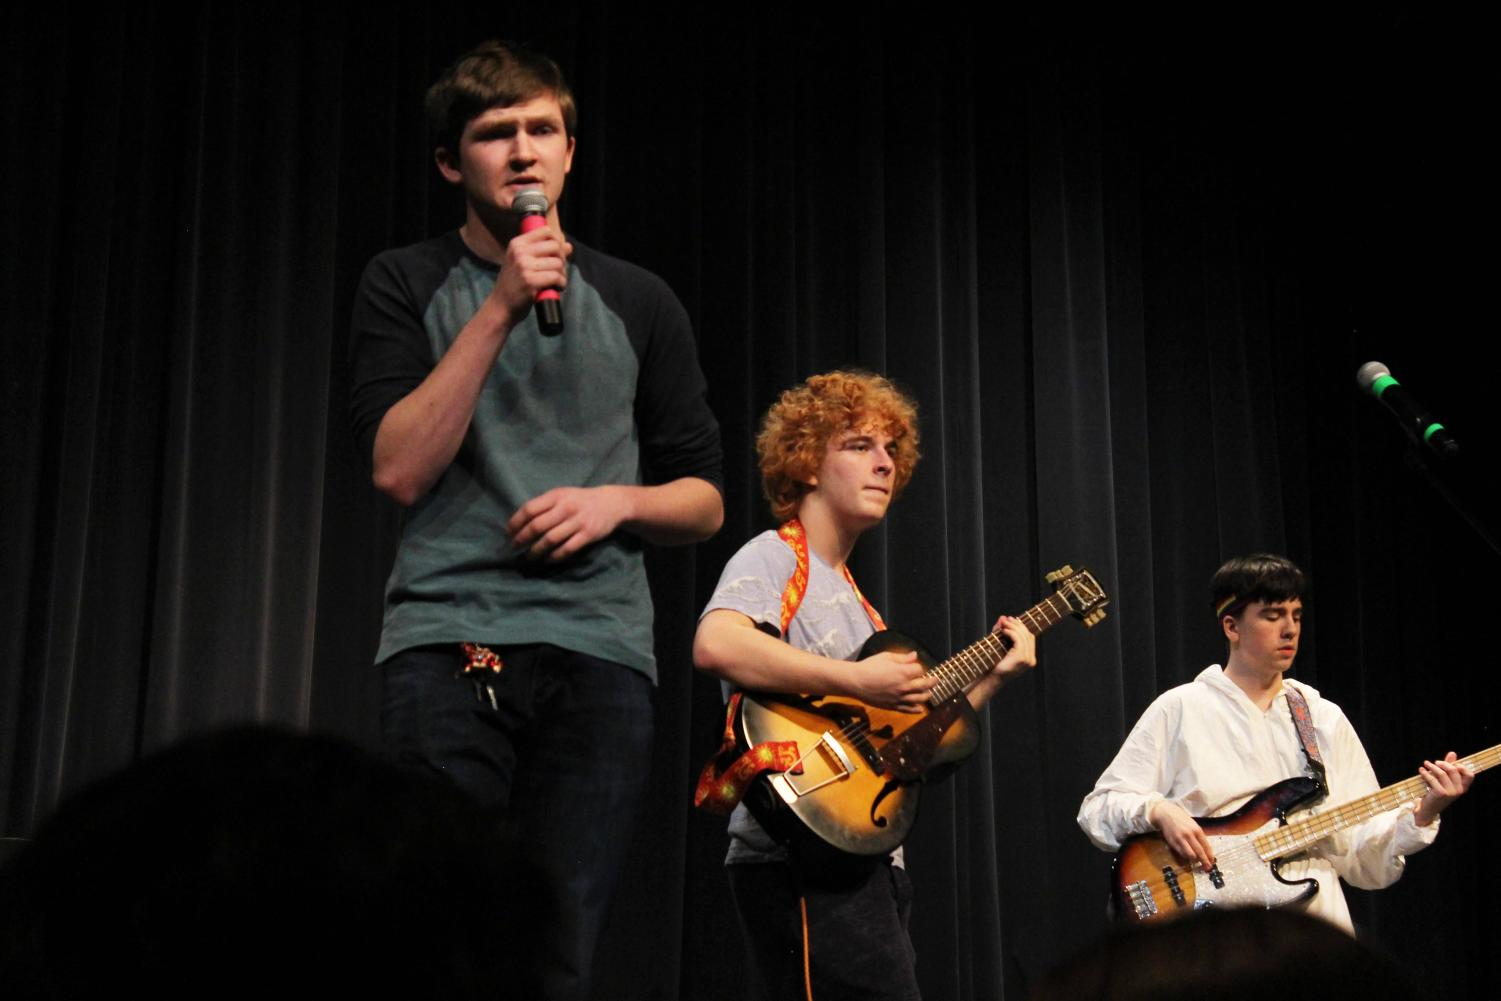 Members of Smells Like Bold perform for Bands Against Bullying on January 25, 2020 in the Ted Sorensen Theatre. Members from left to right: Ethan Rask (11), Emerson Borakove (11), and Zach Paegler (11). Photo by Nevaeh Alonzo